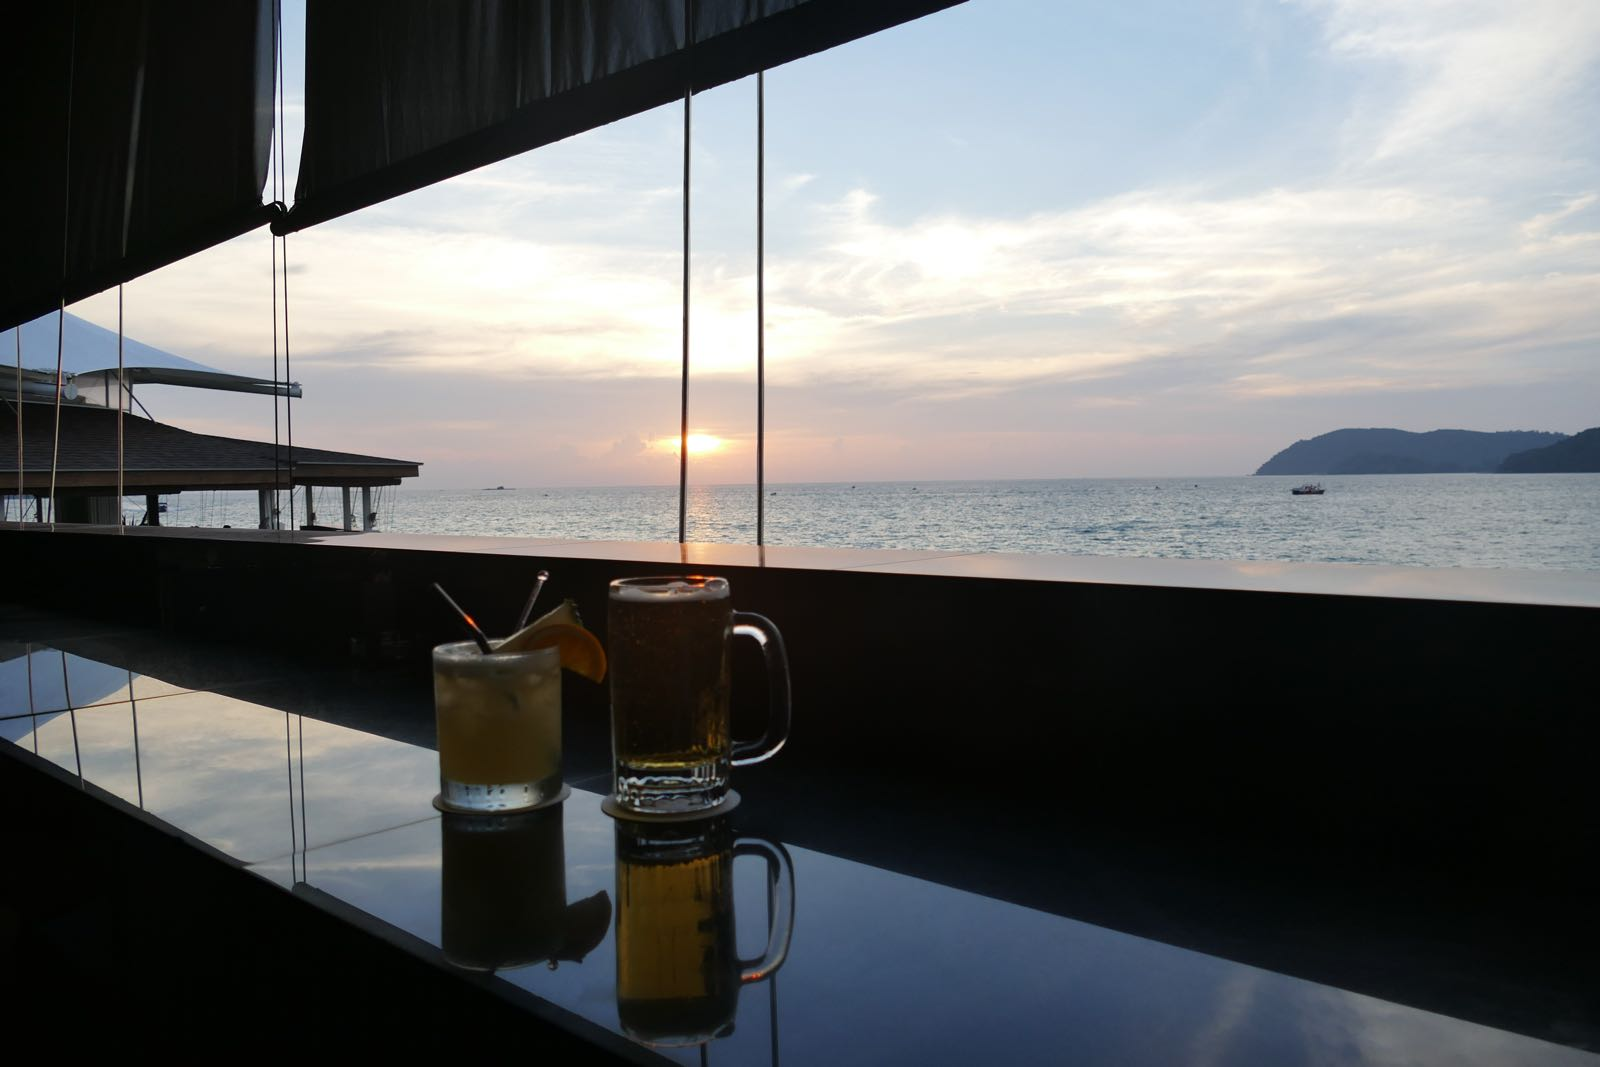 Sonnenuntergang beim The Cliff, Langkawi